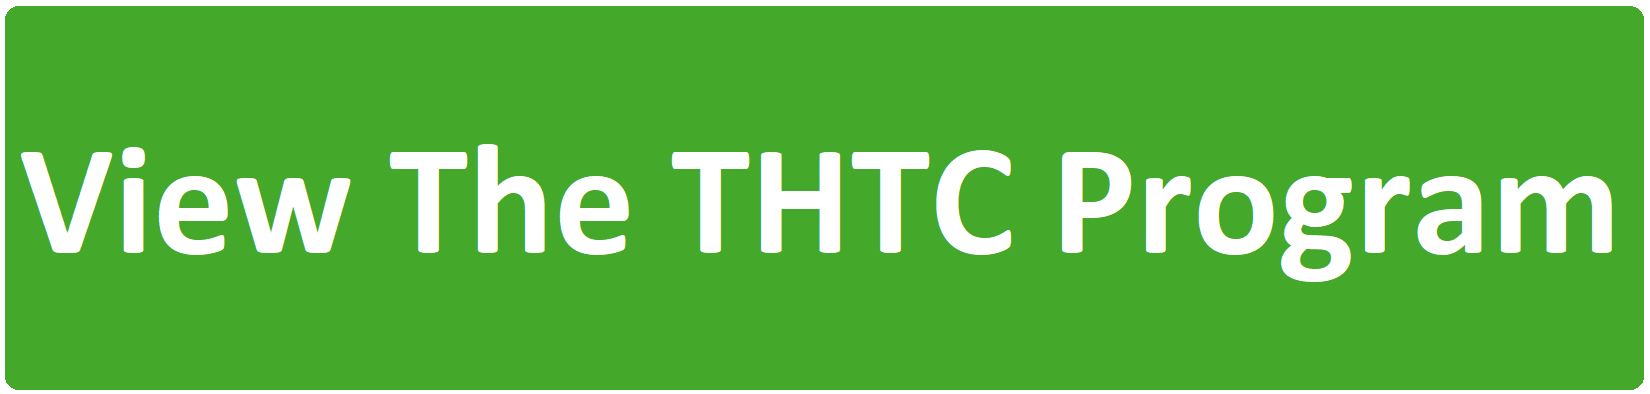 View the THTC Program Button